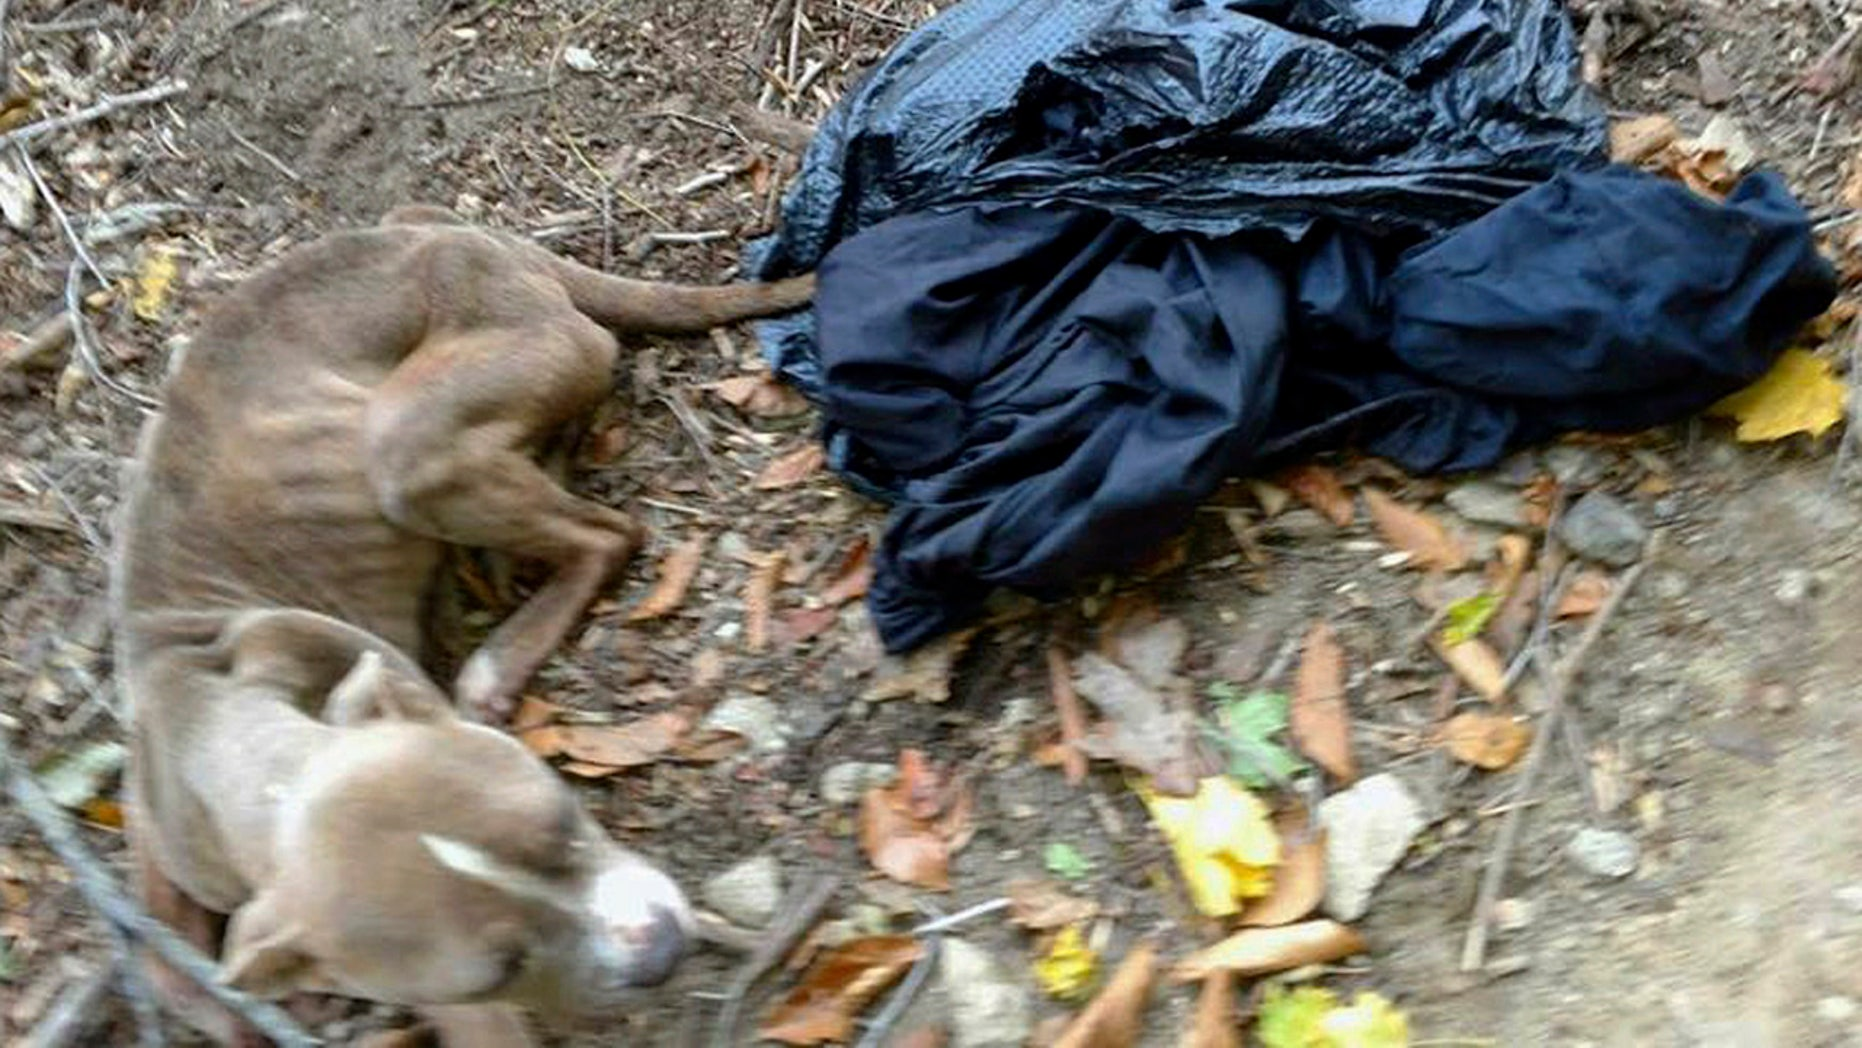 This Nov. 23, 2016, photo provided by Barbara Adams via the Pennsylvania Society for the Prevention of Cruelty to Animals, shows the emaciated dog she noticed inside a trash bag that day in Wissahickon Valley Park in Philadelphia.